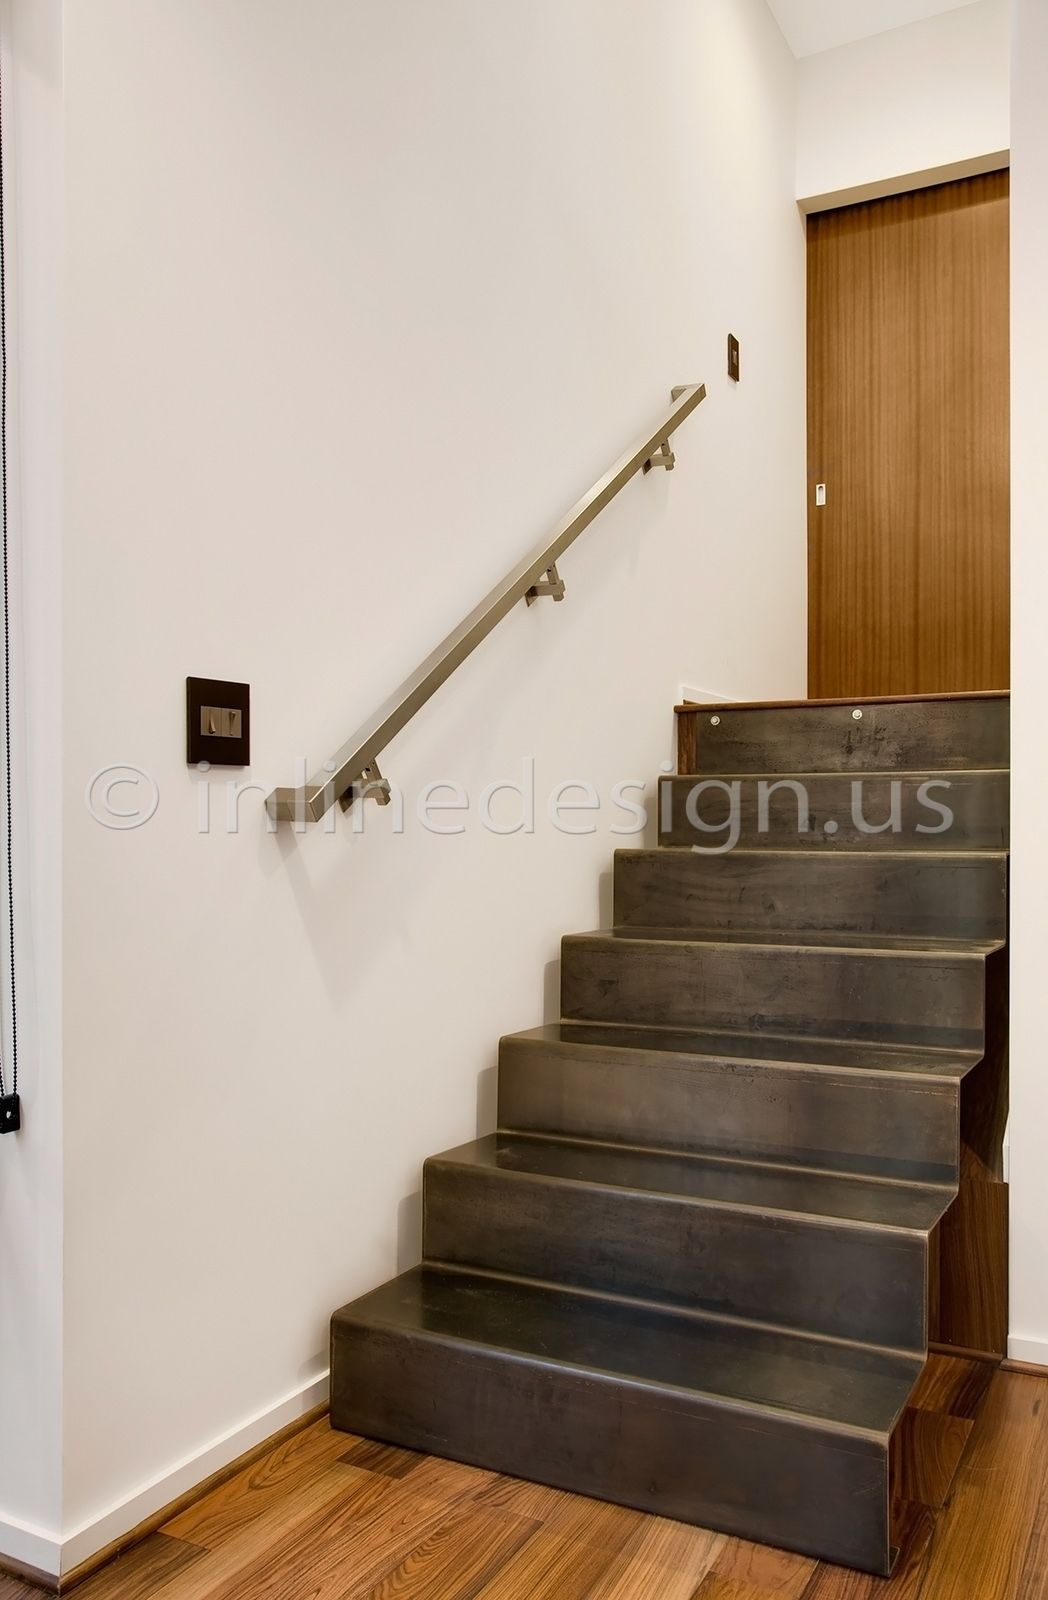 Image result for staircase wall balustrade Stainless